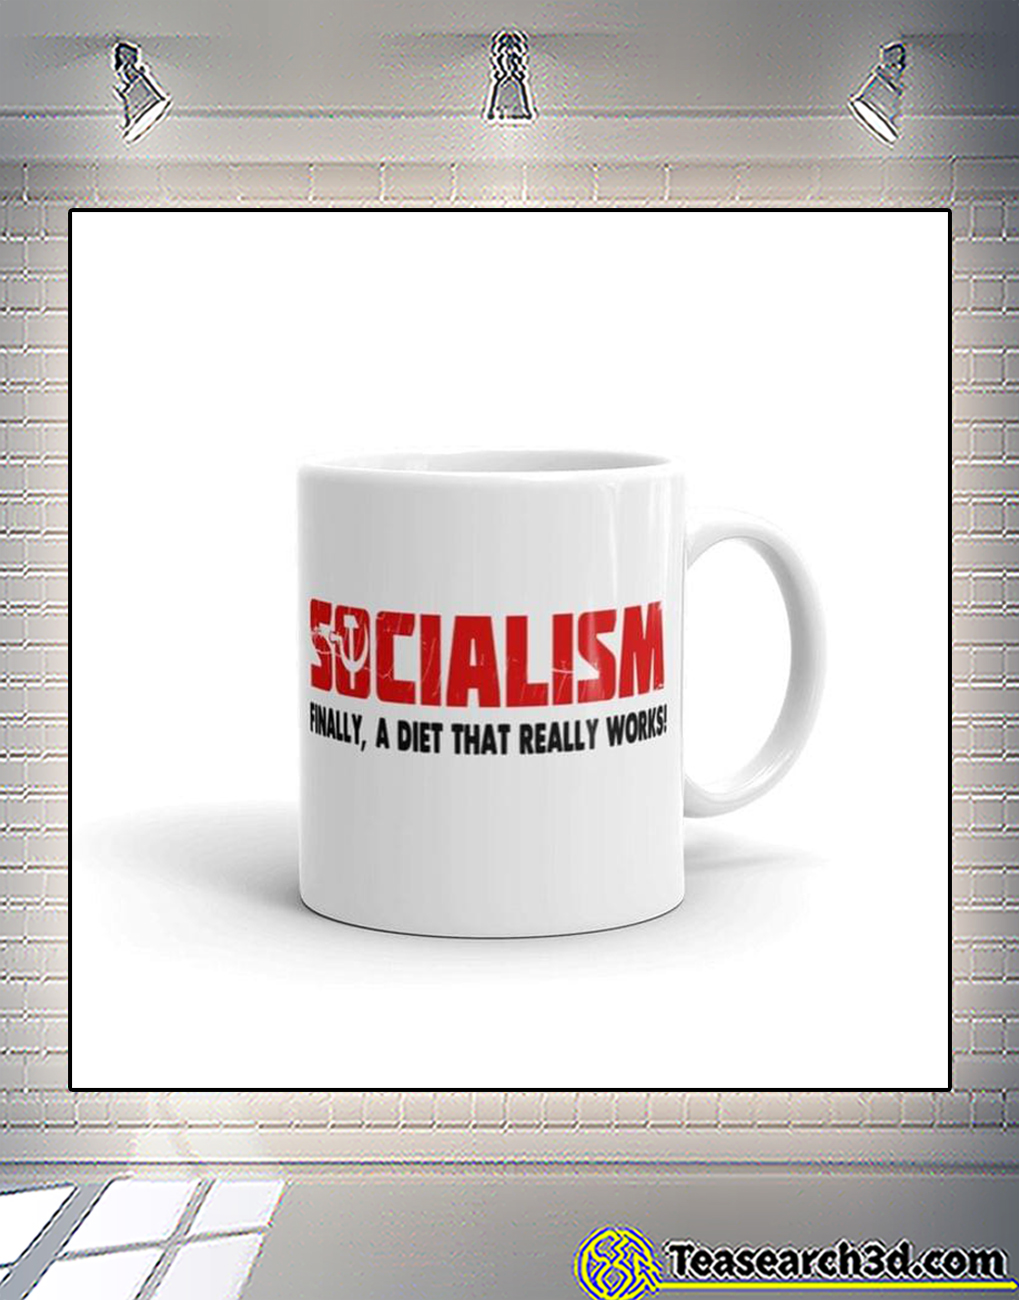 Socialism finally a diet that really works mug